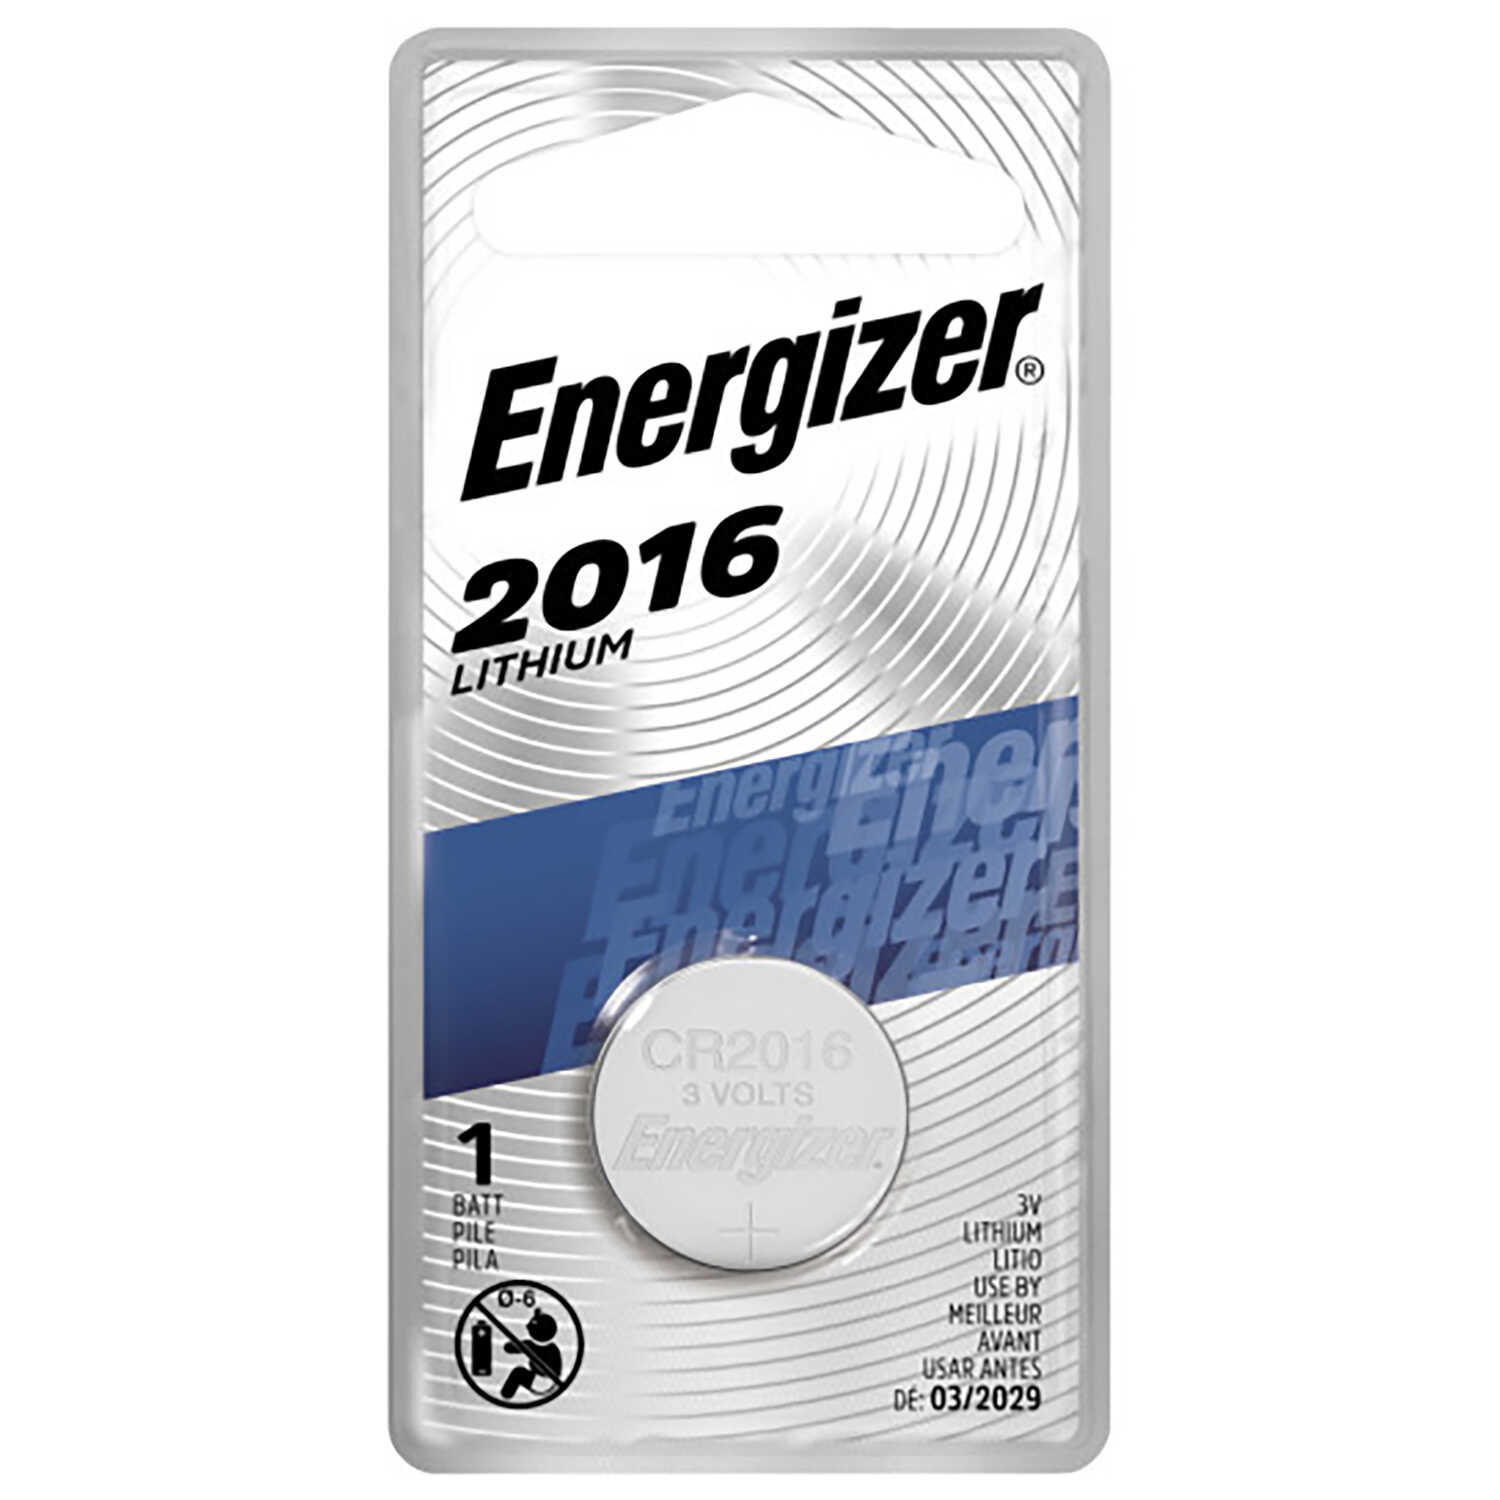 Energizer  Lithium  2016  3 volt Keyless Entry Battery  1 pk